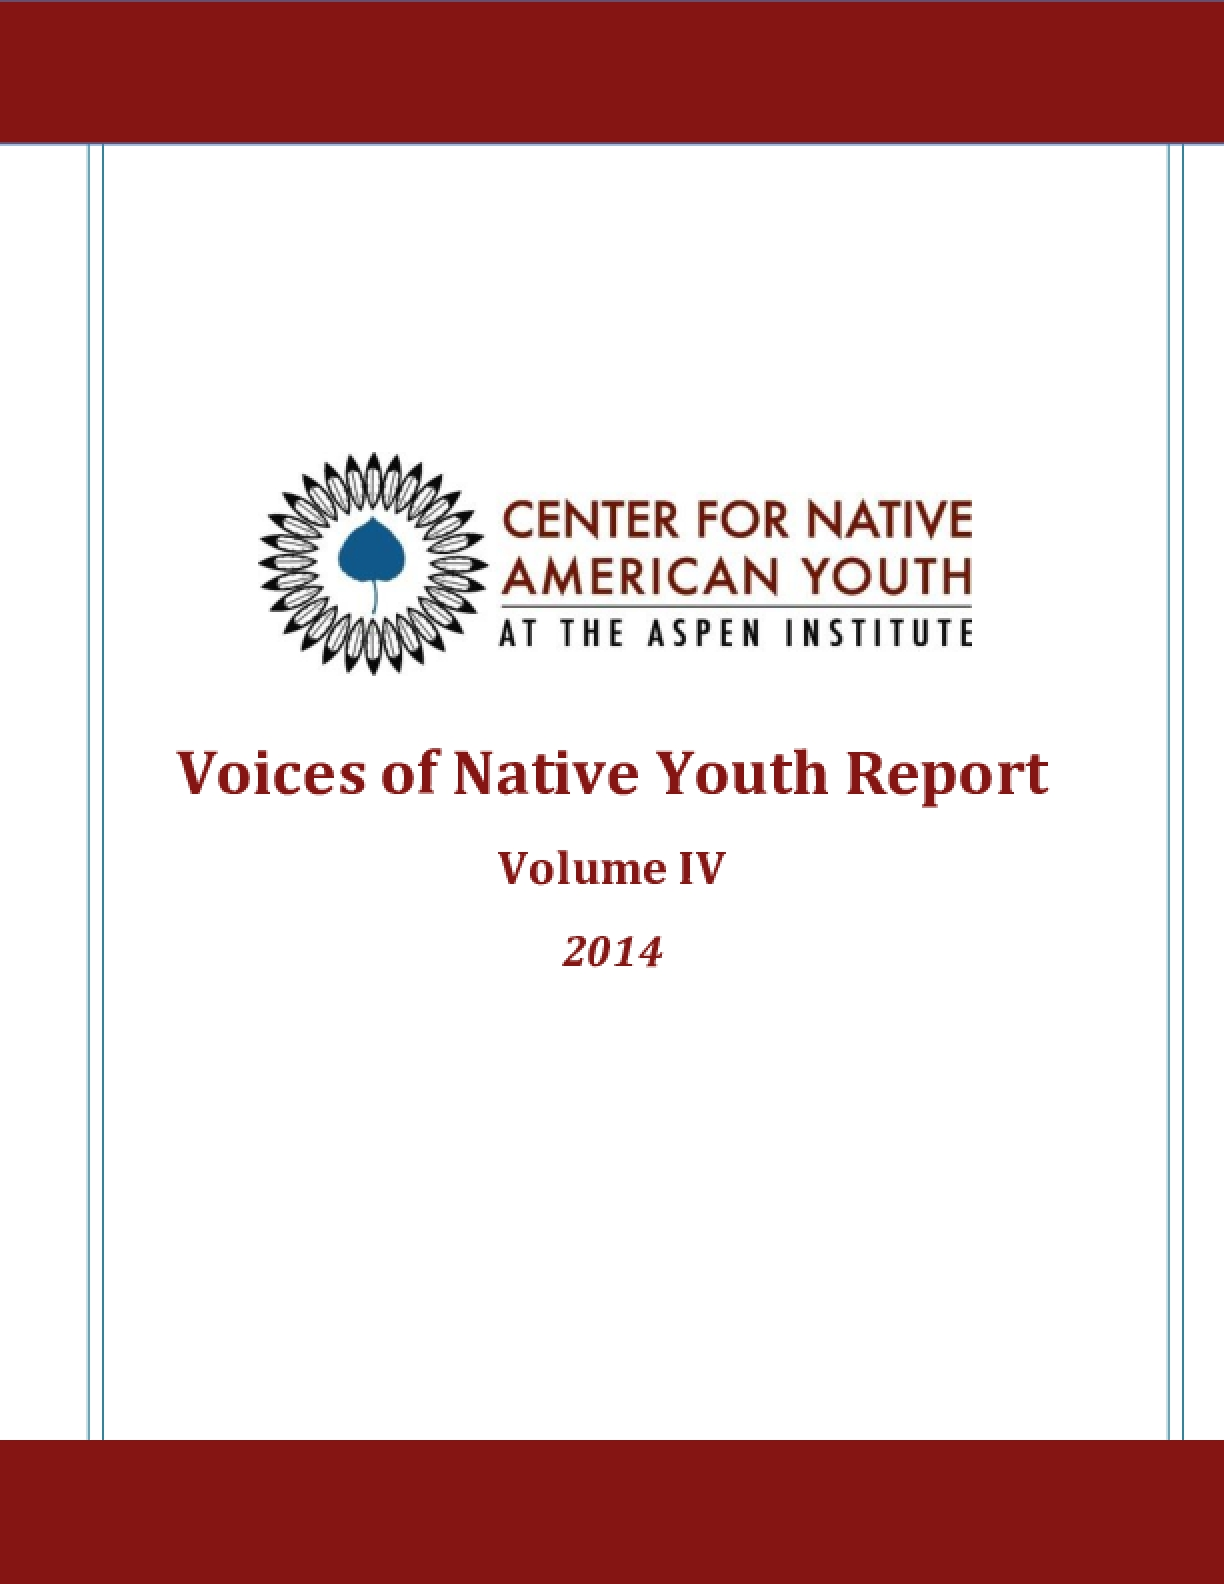 Voices of Native Youth Report Volume 4